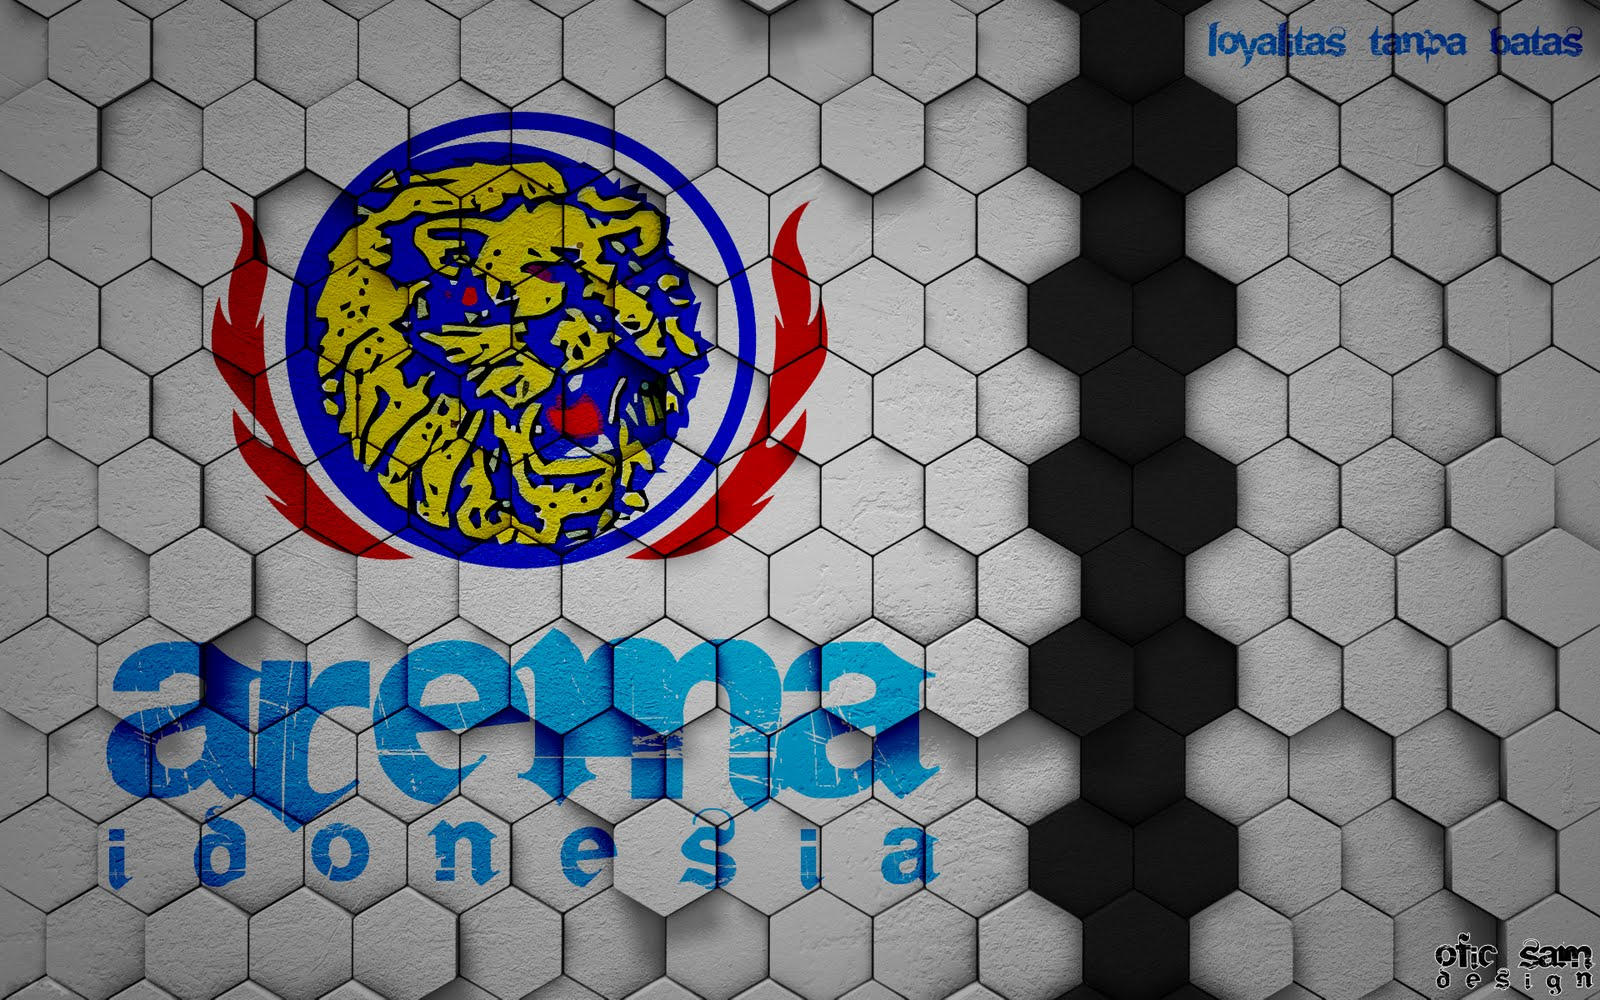 http://1.bp.blogspot.com/-_K_DBYYLYOY/TglqmwGknFI/AAAAAAAAAUc/GmpXOmWyPBo/s1600/wallpaper+arema+indonesia+2011+by+%2528ofic+sam%2529+fb..+boy_gassipers%2540yahoo.co.id+1.jpg